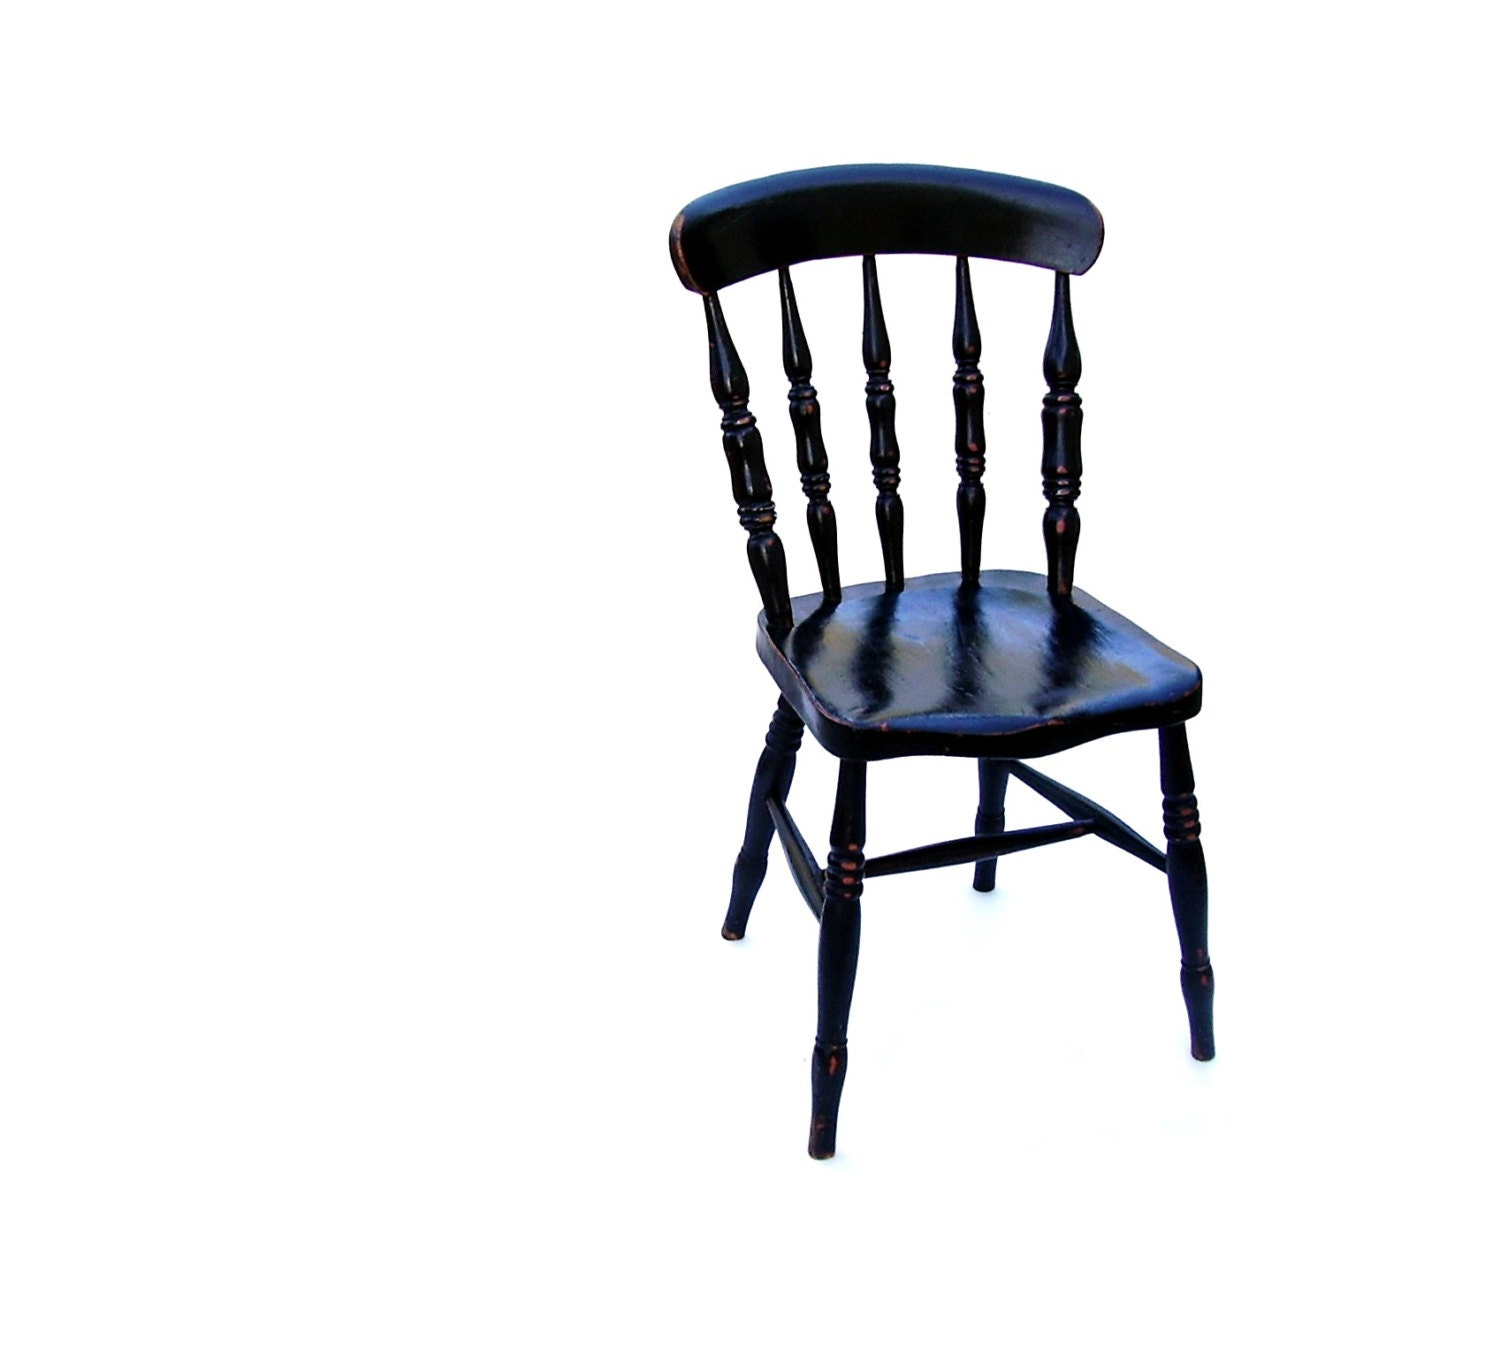 Antique wooden spindle chairs -  Zoom